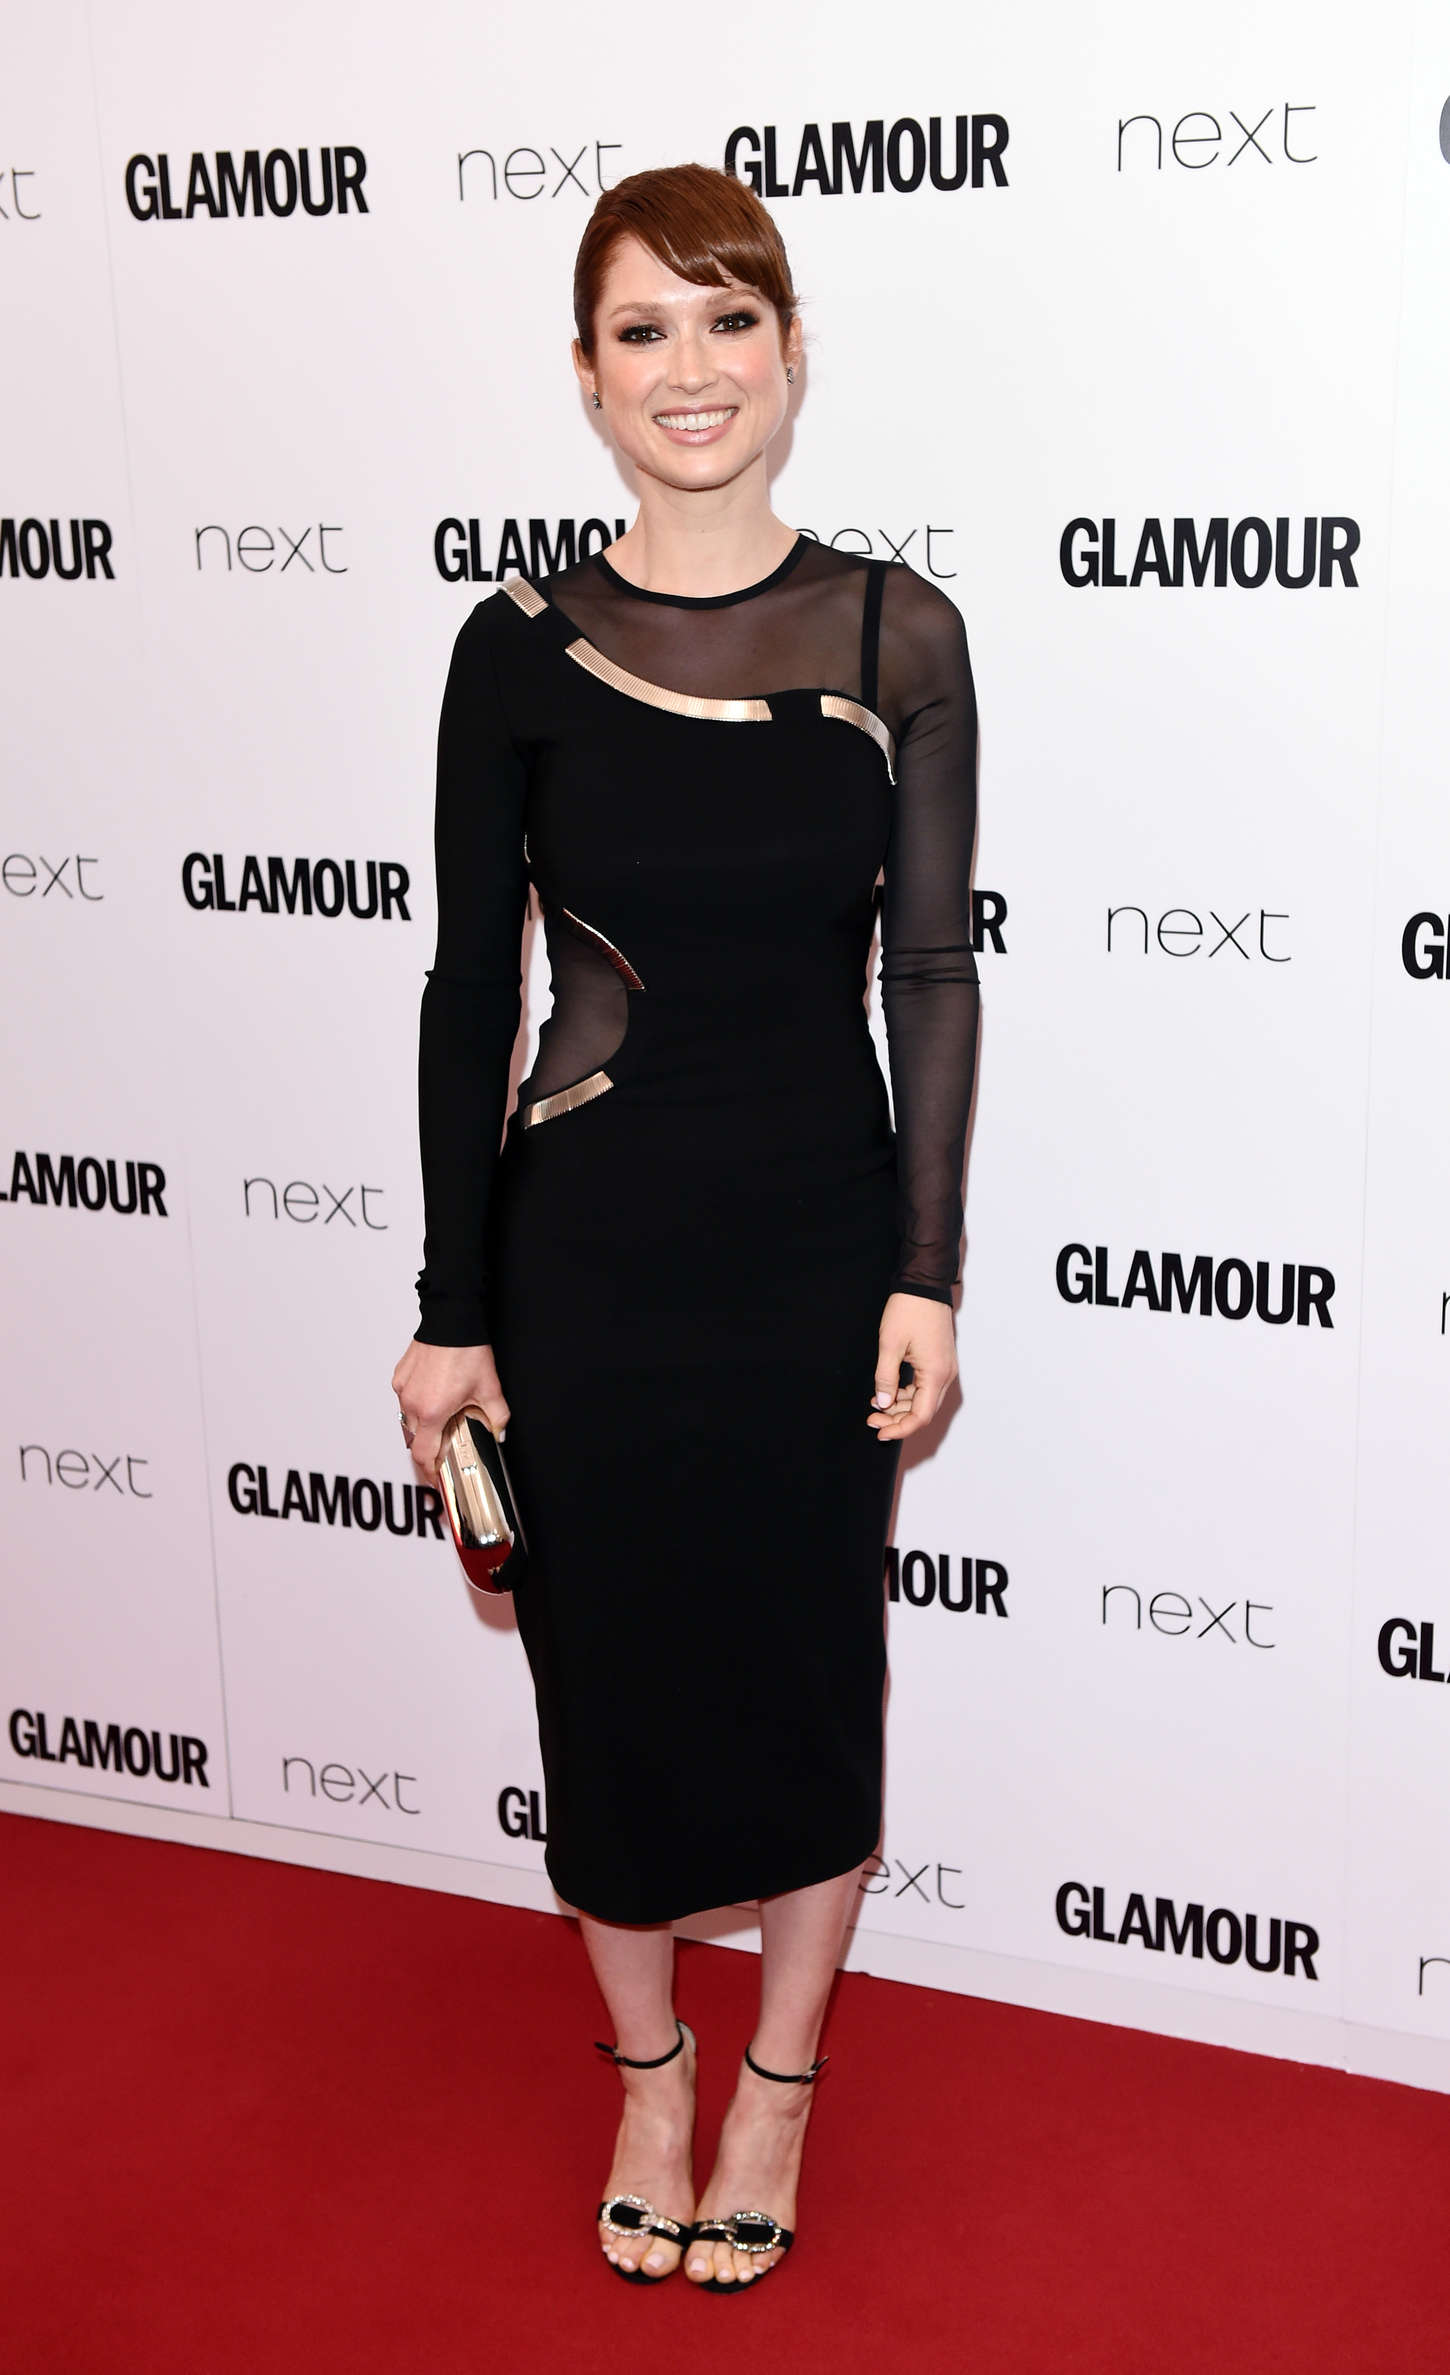 Ellie-Kemper--Glamour-Women-Of-The-Year-Awards-2015--01